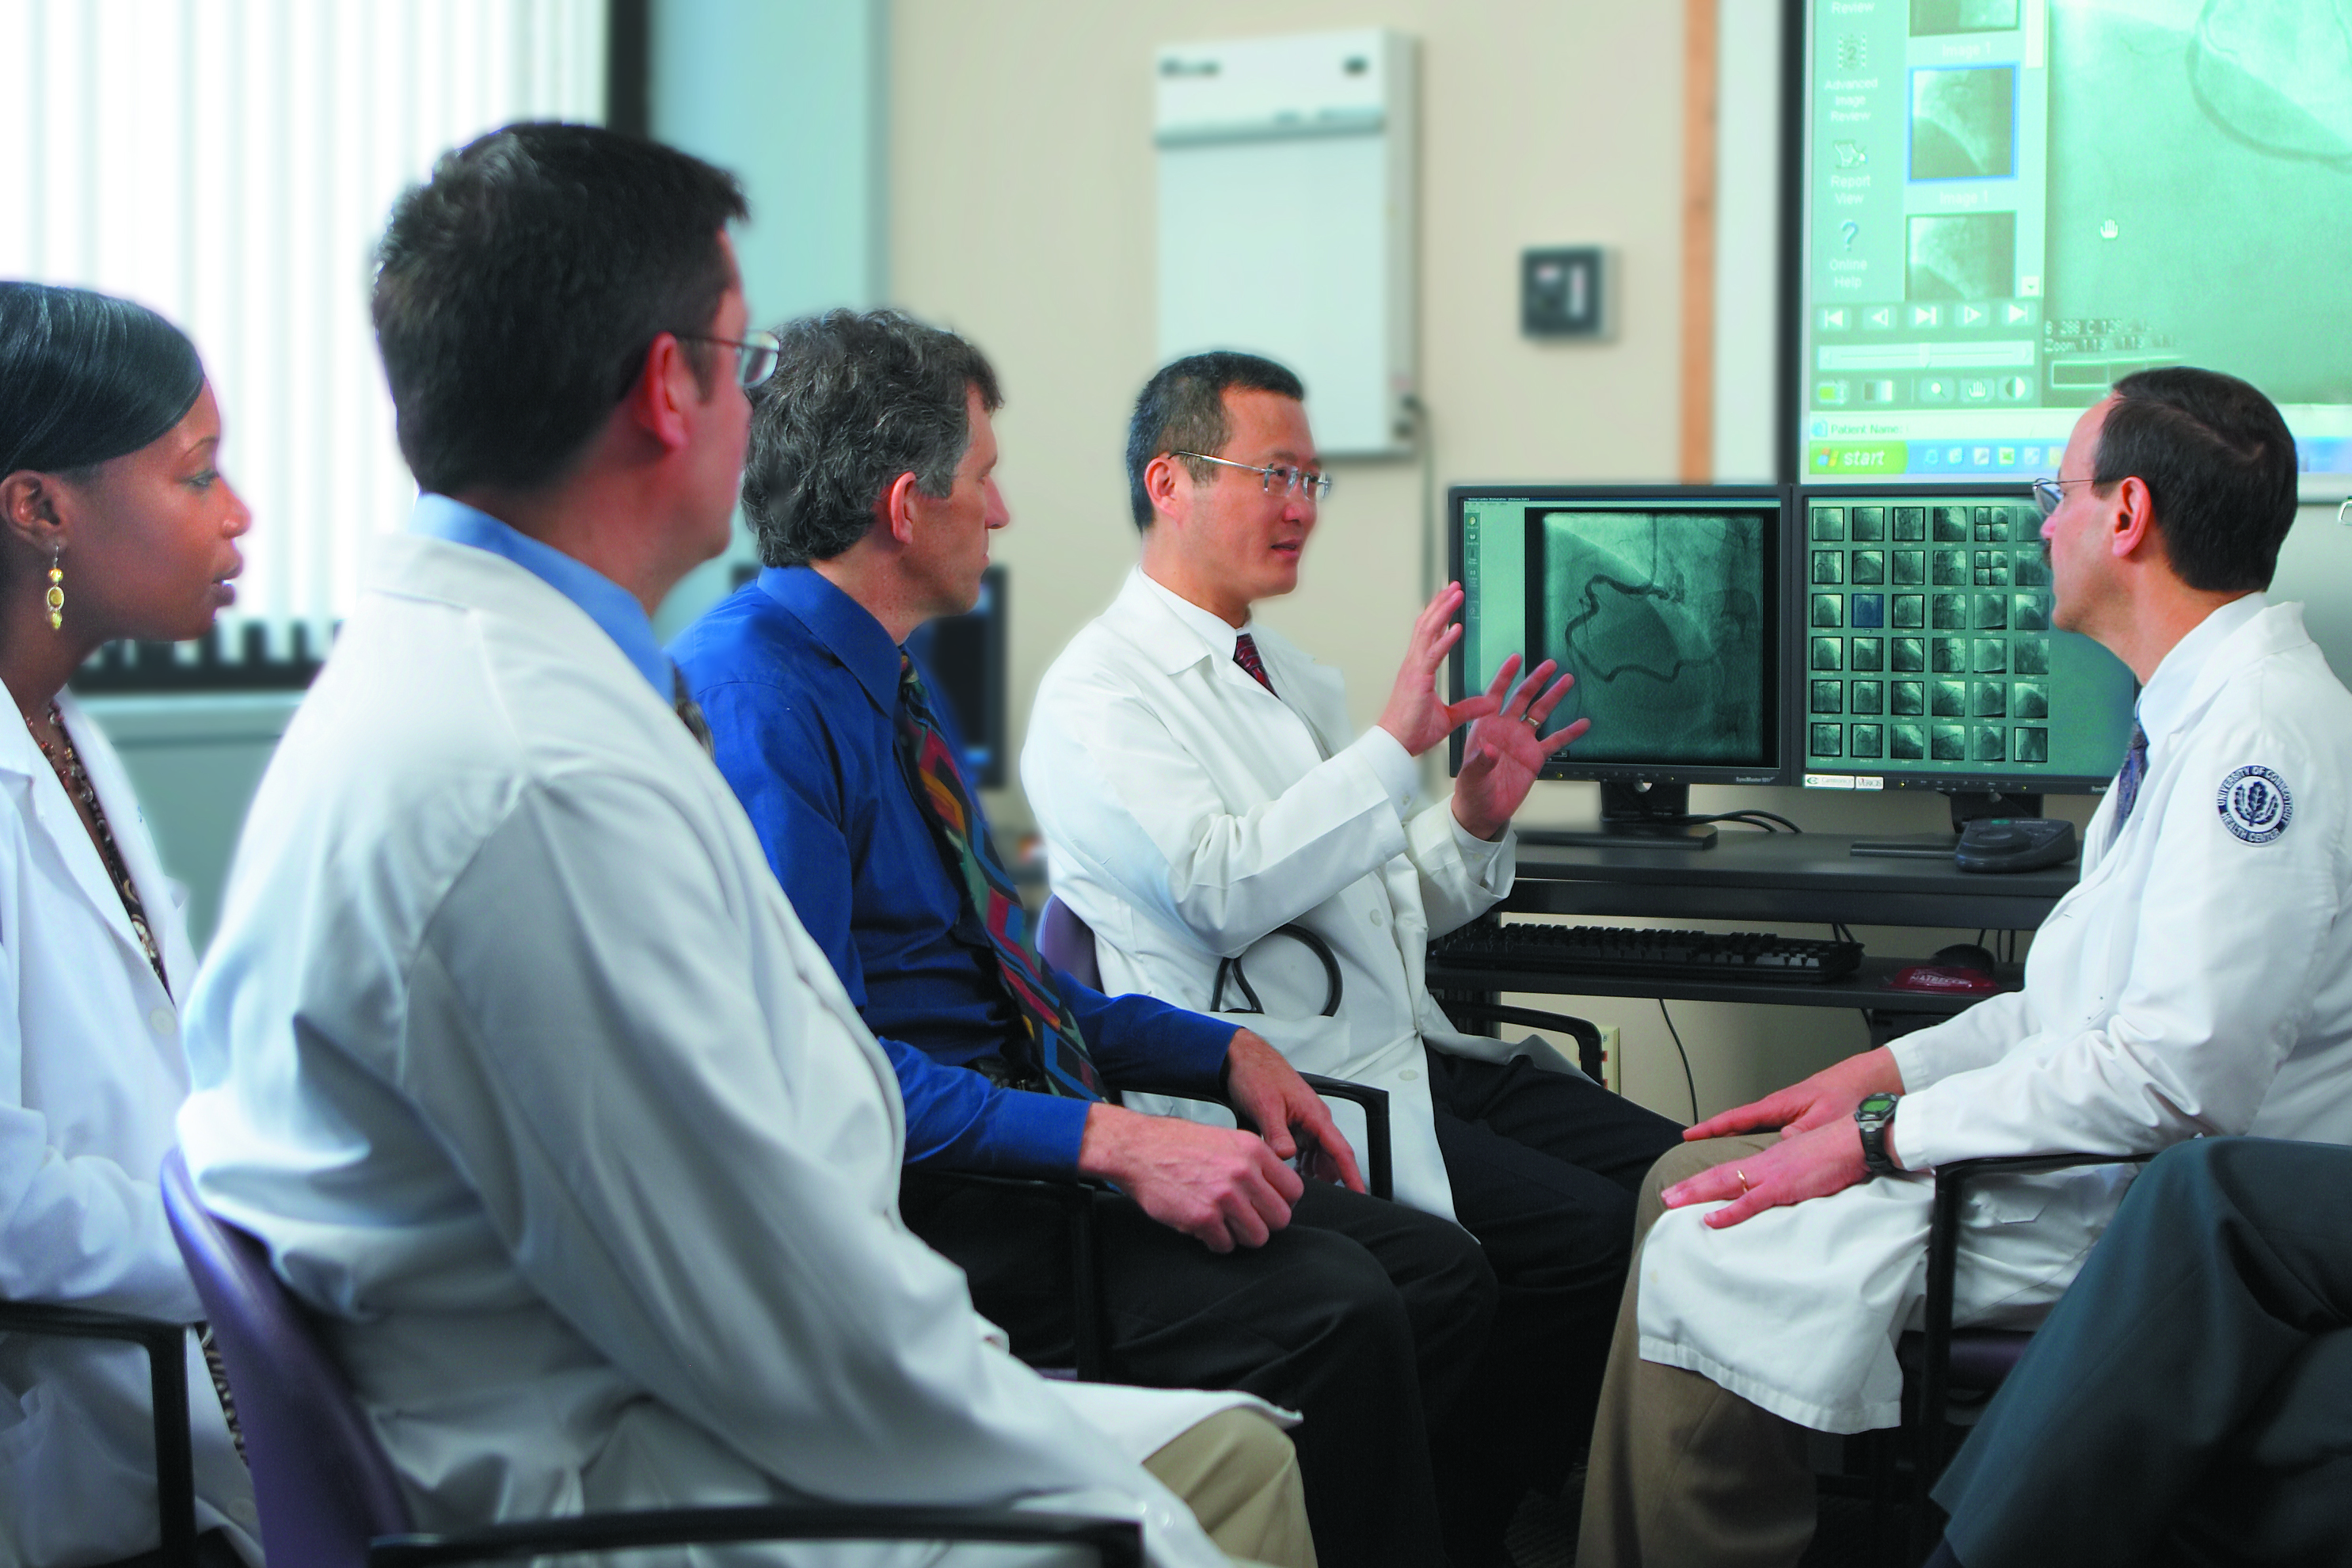 Dr. Bruce Liang, center, reviews a patient's case with physicians from the Pat and Jim Calhoun Cardiology Center. (Lanny Nagler for UConn Health Center)